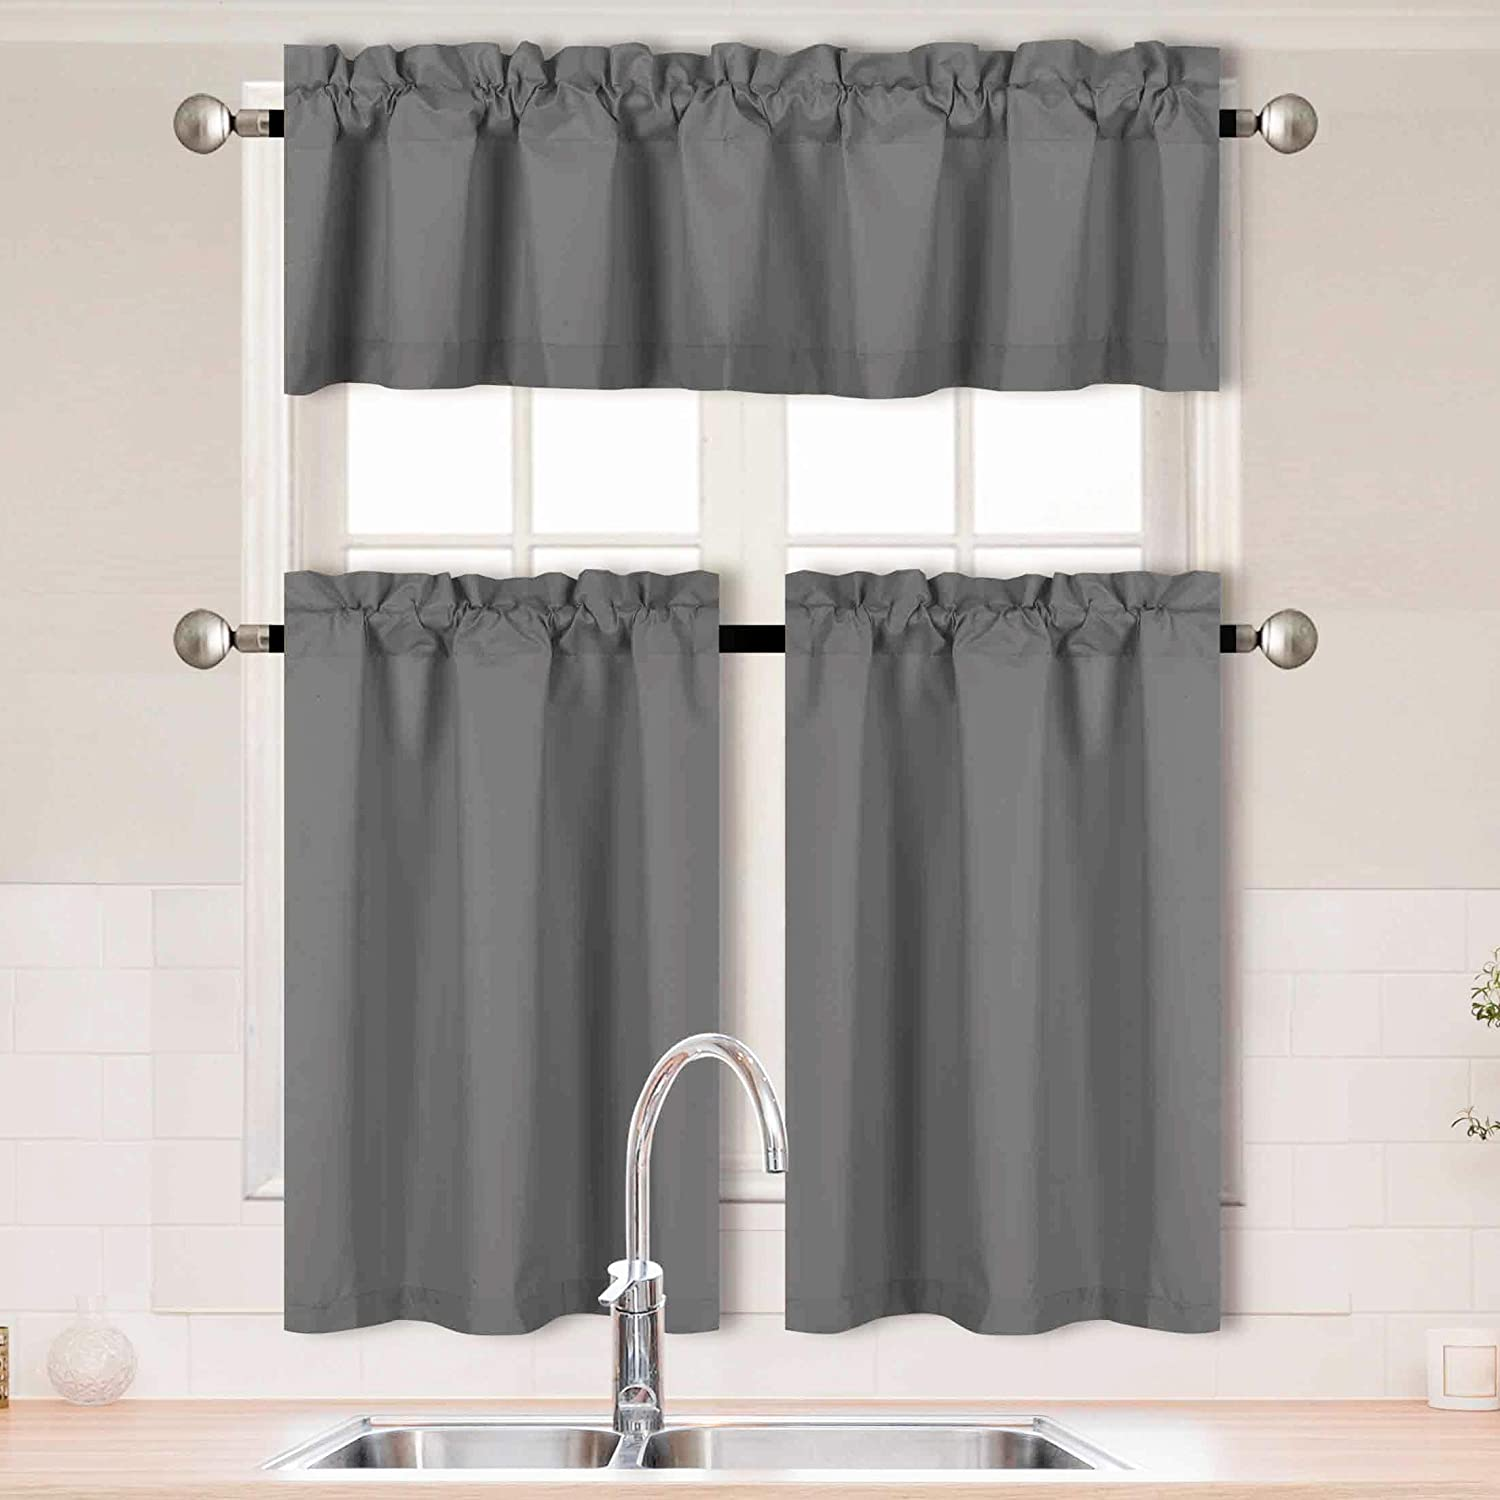 Better Home Style 3 Piece Solid Color 100% Blackout Kitchen Window Curtain Set with Tiers and Valance Solid Energy Efficient Thermal Room Darkening Drape Window Treatment # MKC  (Charcoal)